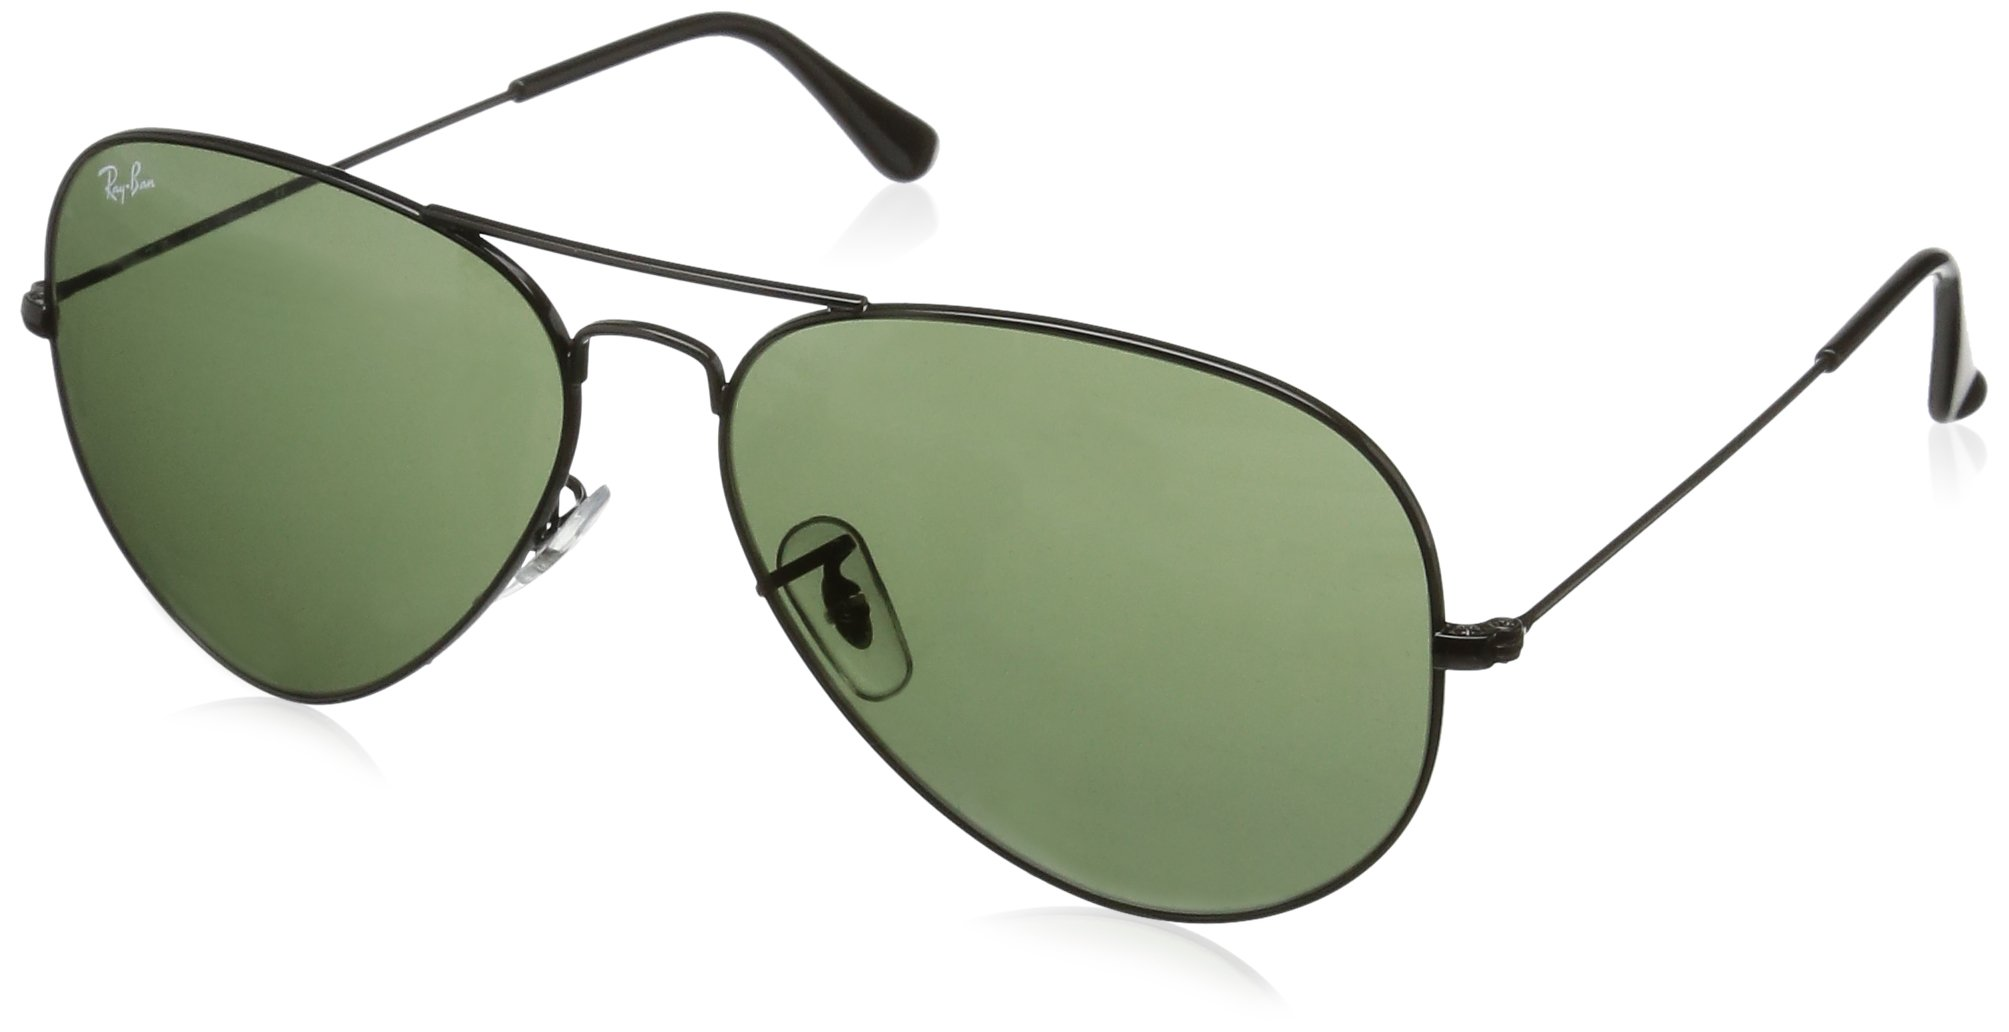 Ray-Ban Sunglasses - RB3026 Aviator Large Metal II / Frame: Black (62mm) Lens: Green